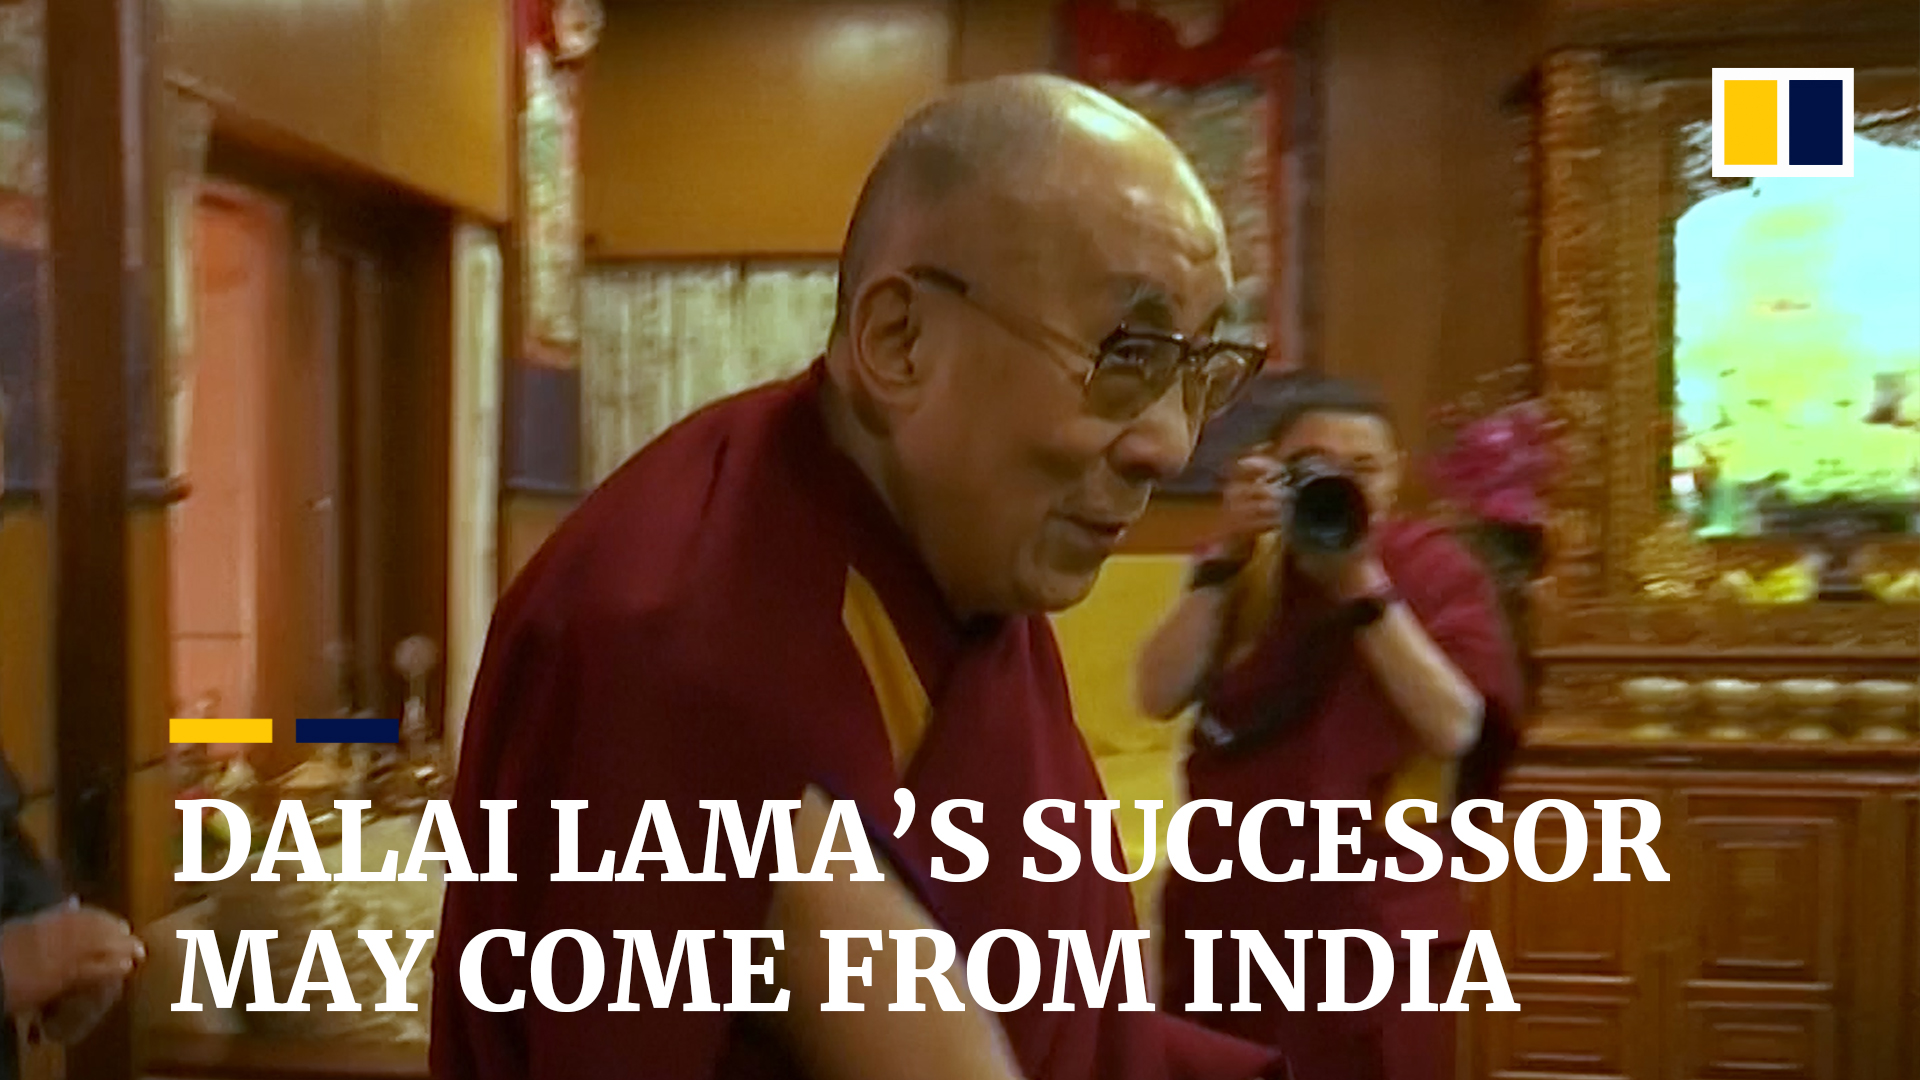 Dalai Lama In Hospital With Chest Infection And Feeling